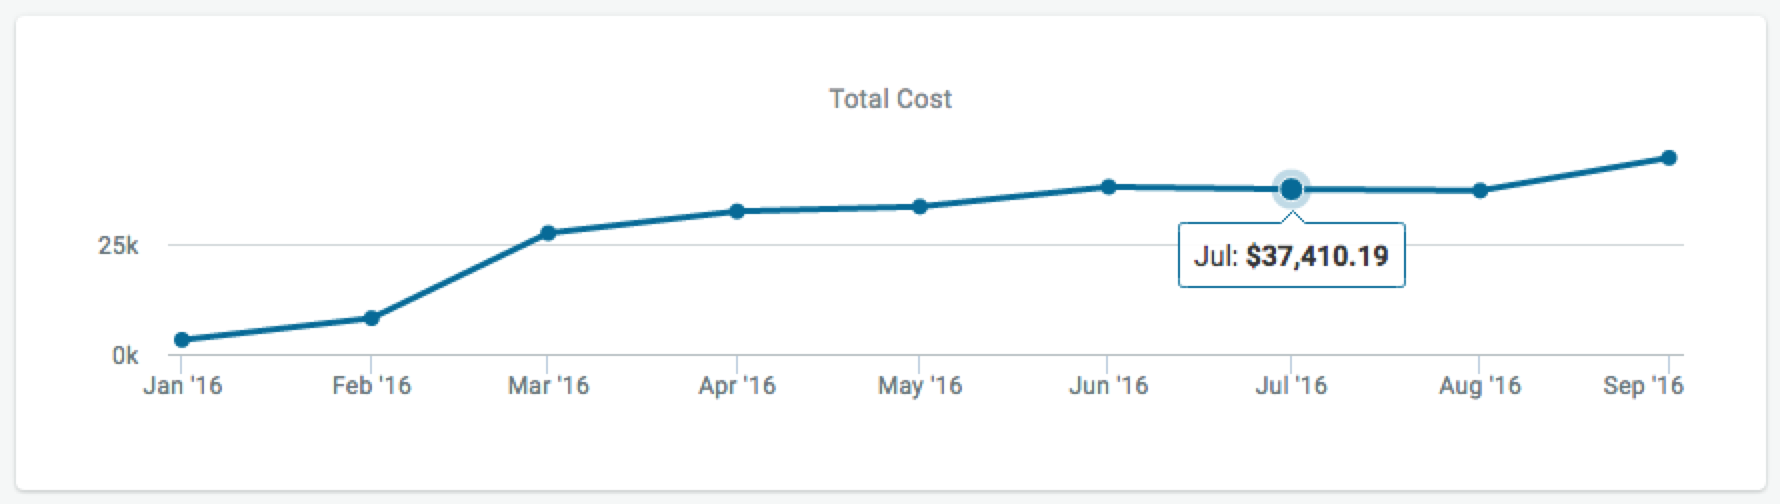 total cost trend